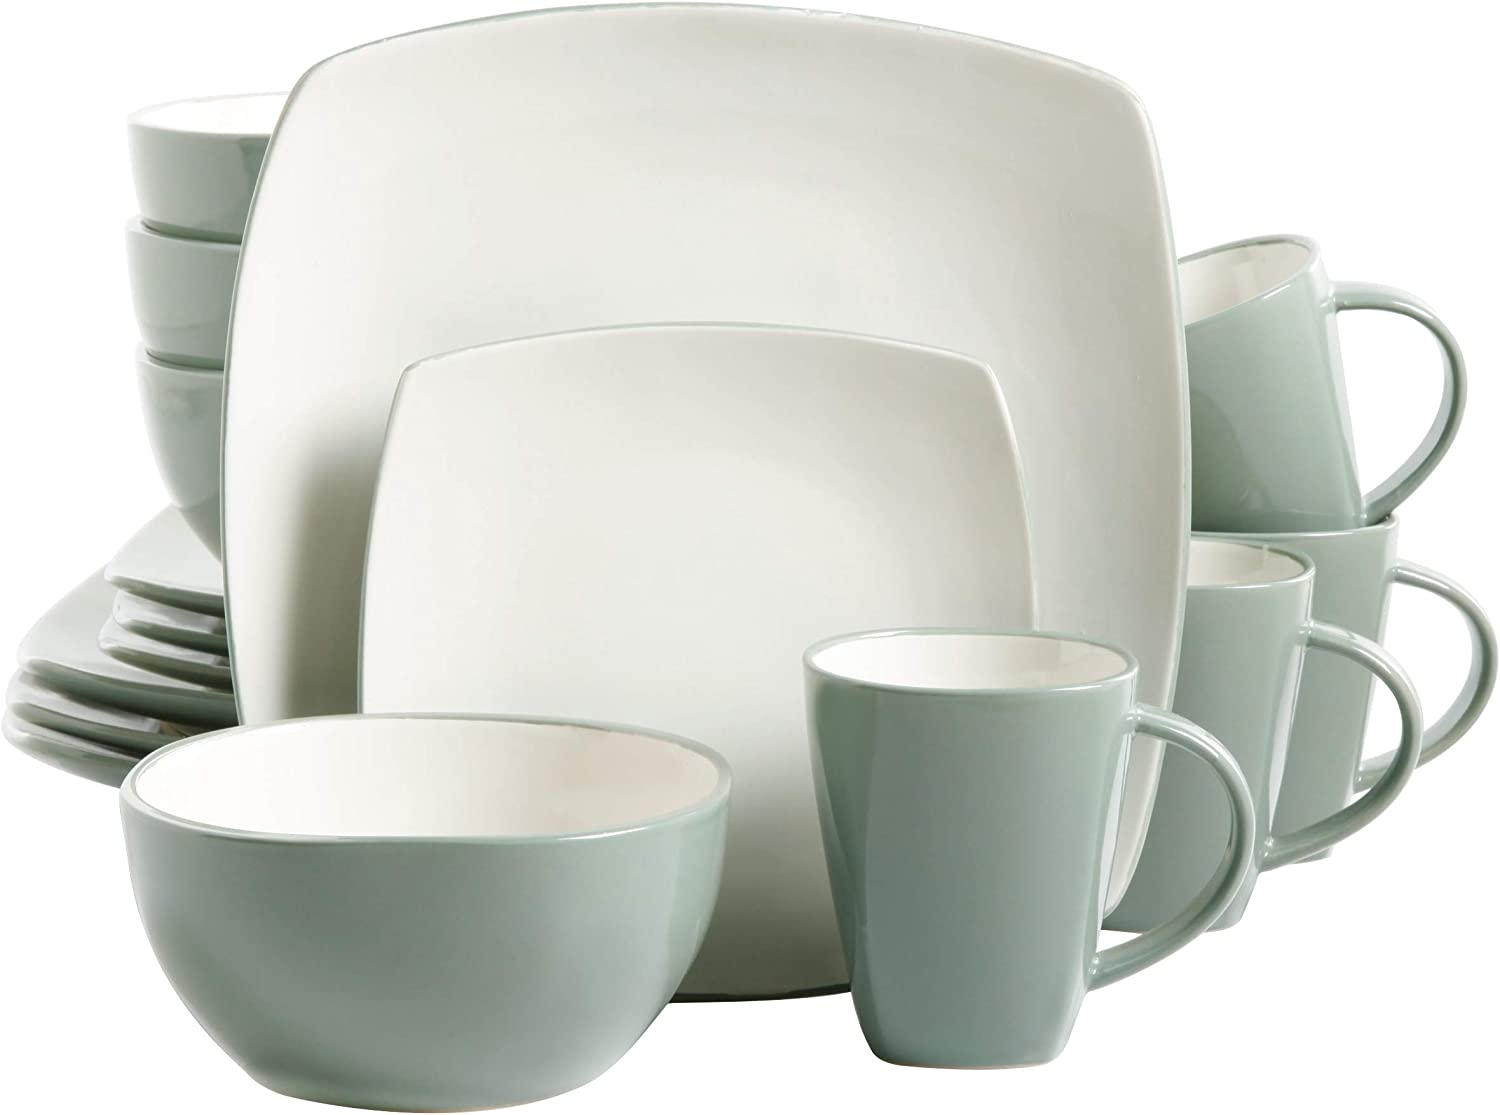 Gibson Soho Lounge Dinnerware set, Square, Celadon